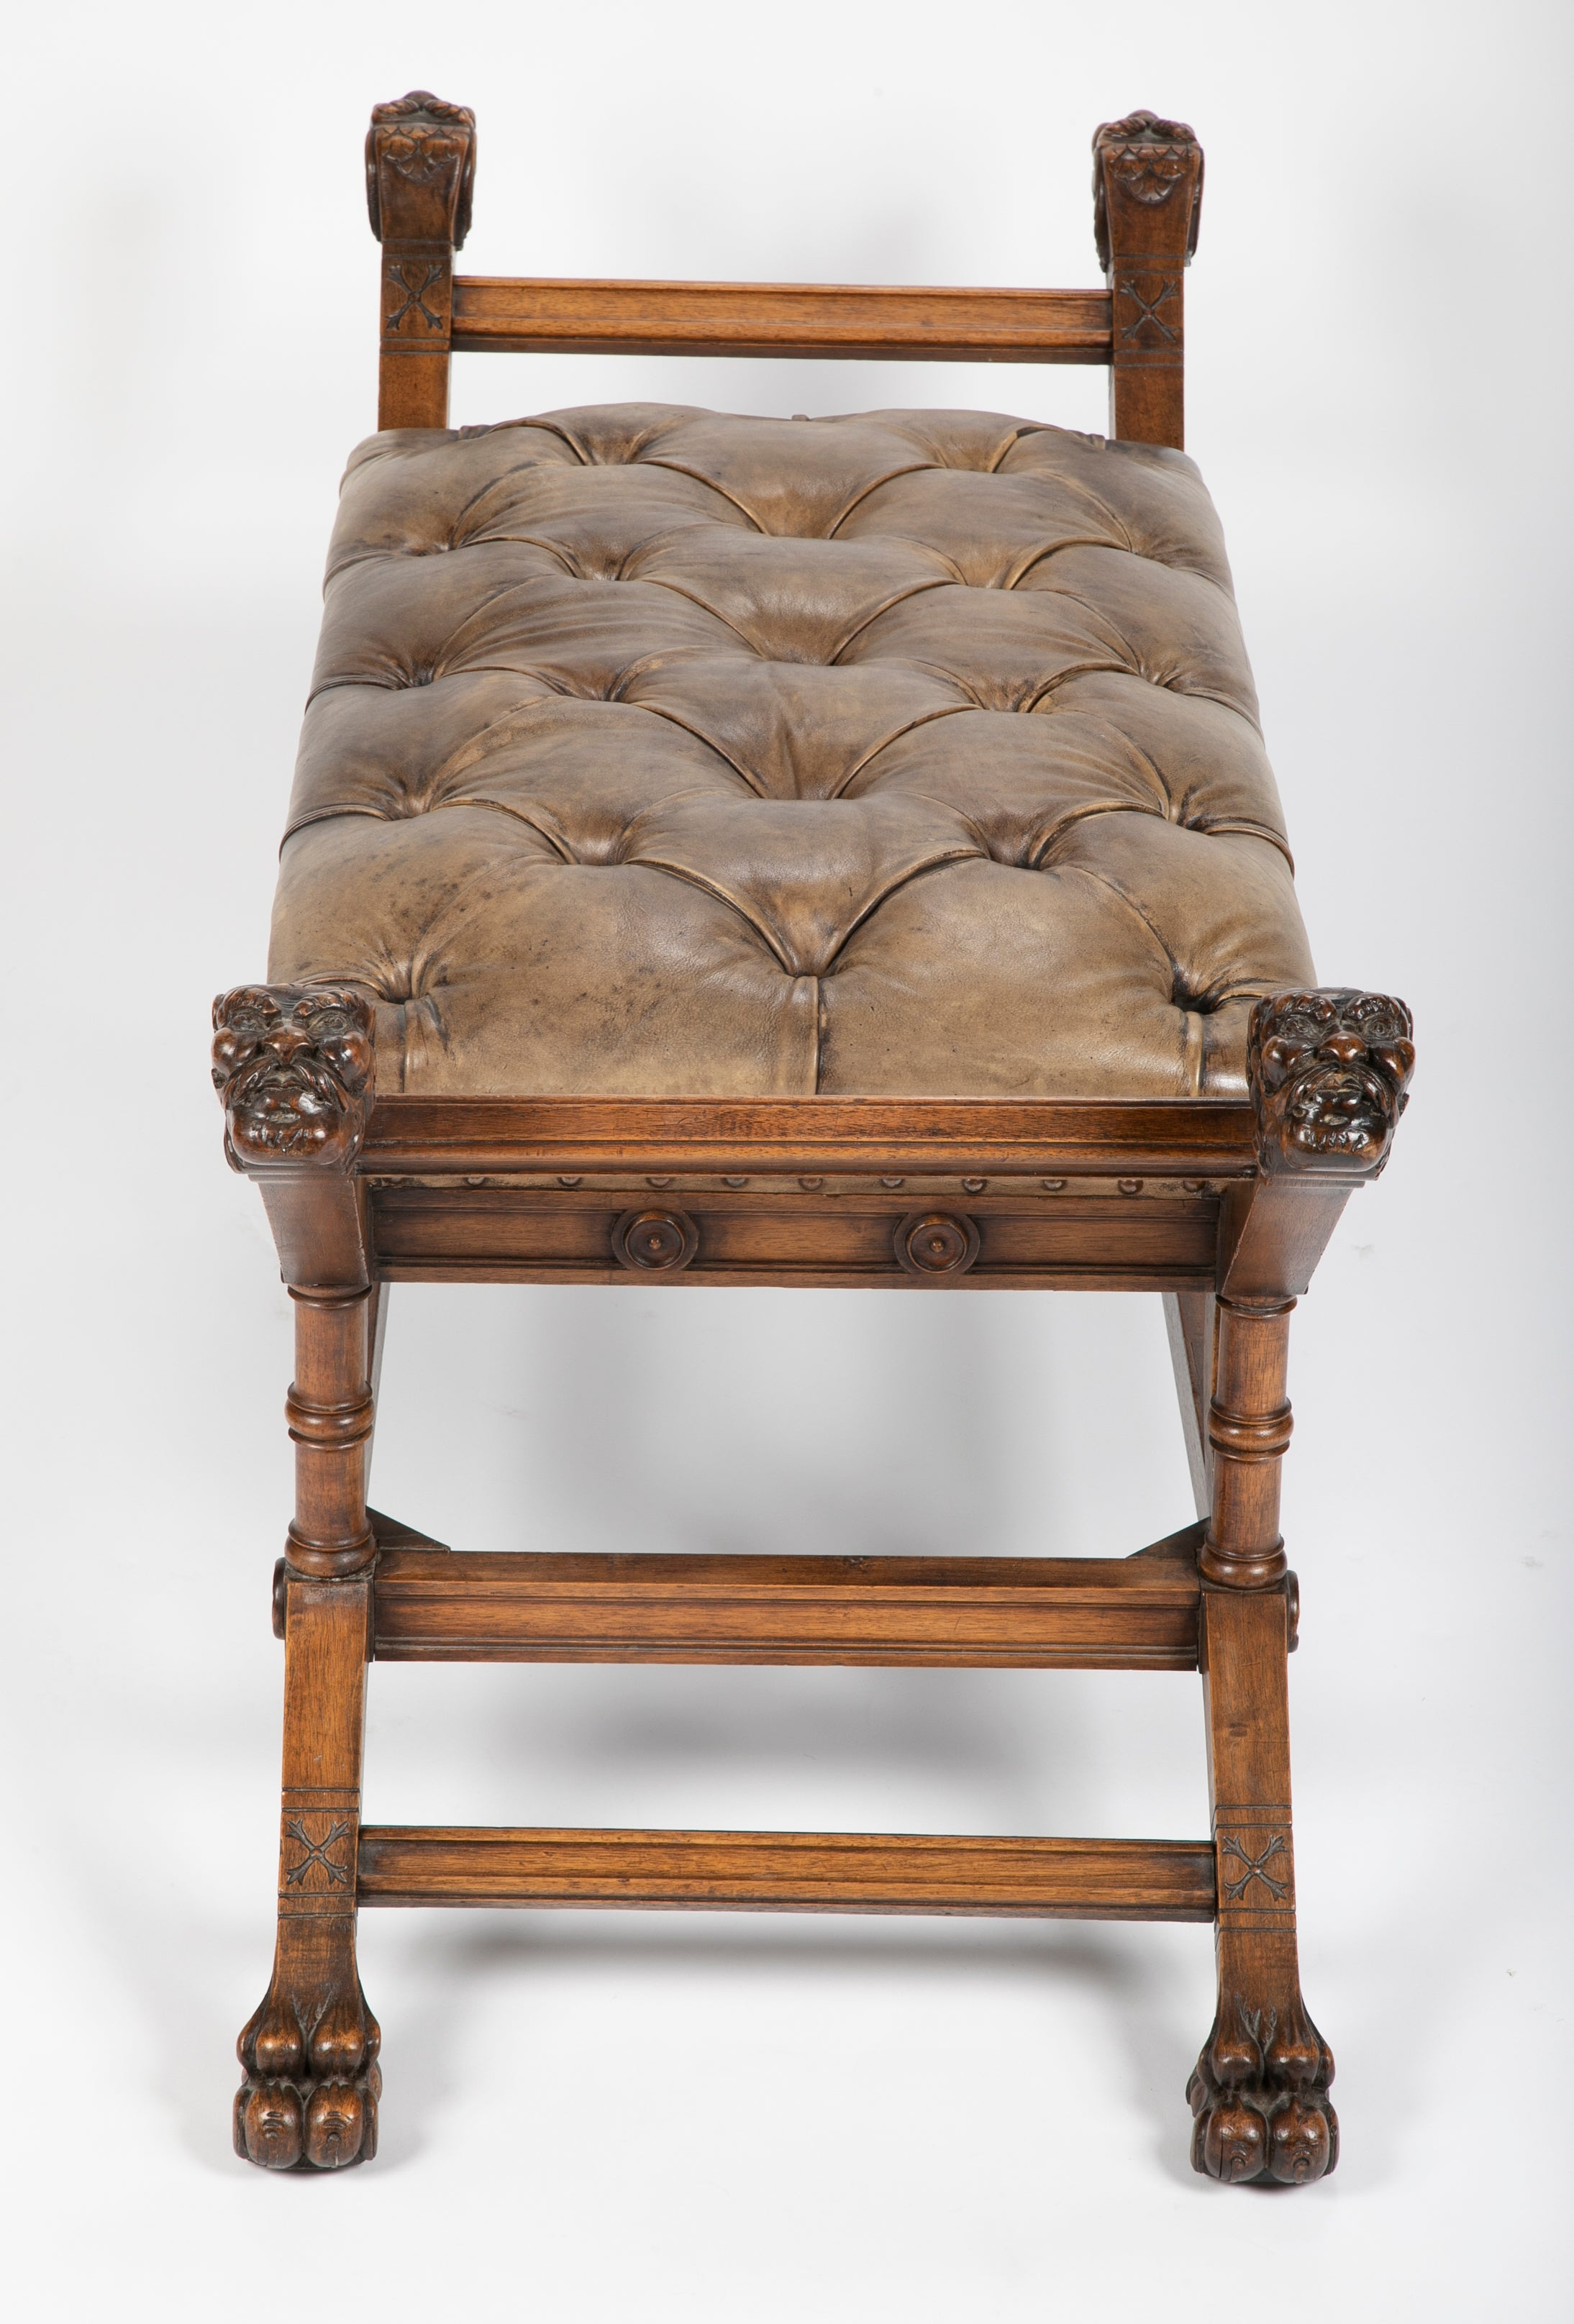 A Walnut  Banquette or Window Bench with Tufted Leather Seat